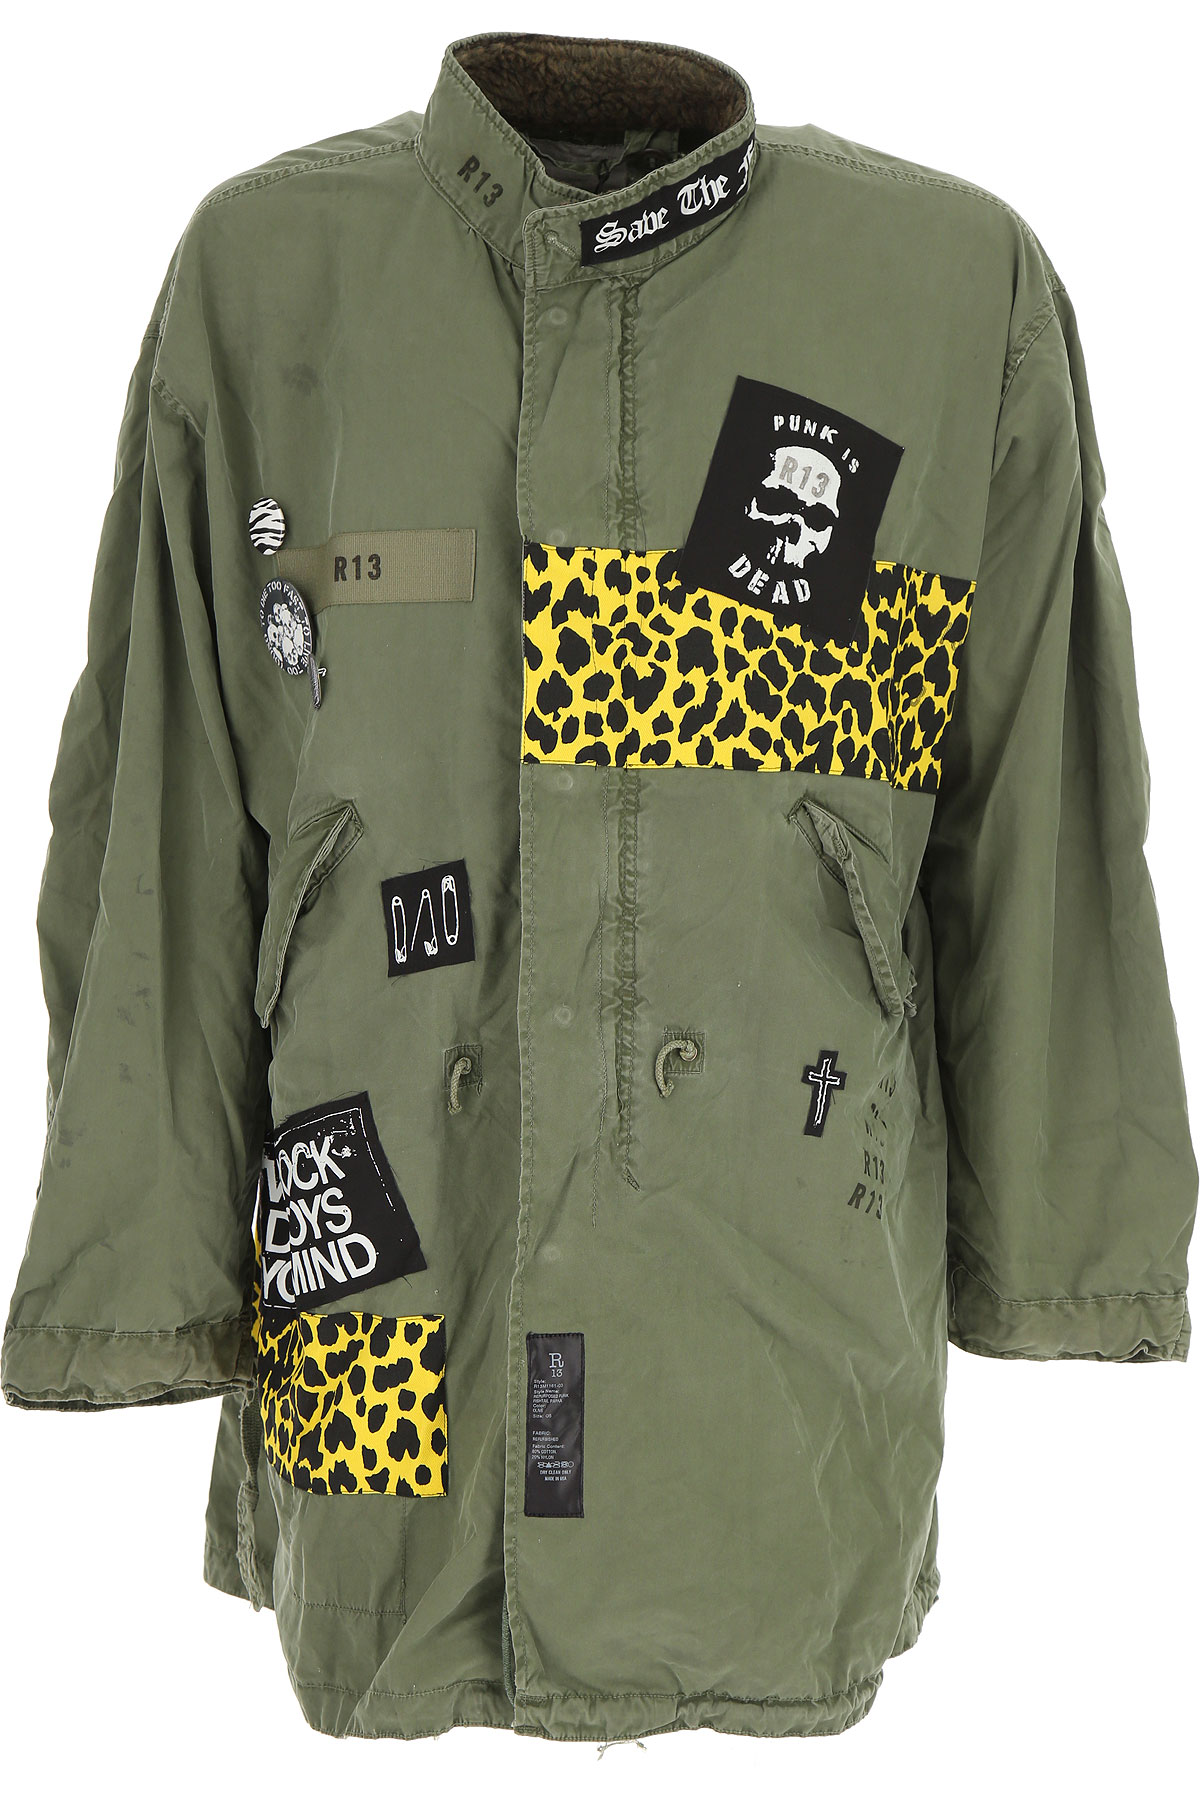 Image of R13 Jacket for Men, Olive, Cotton, 2017